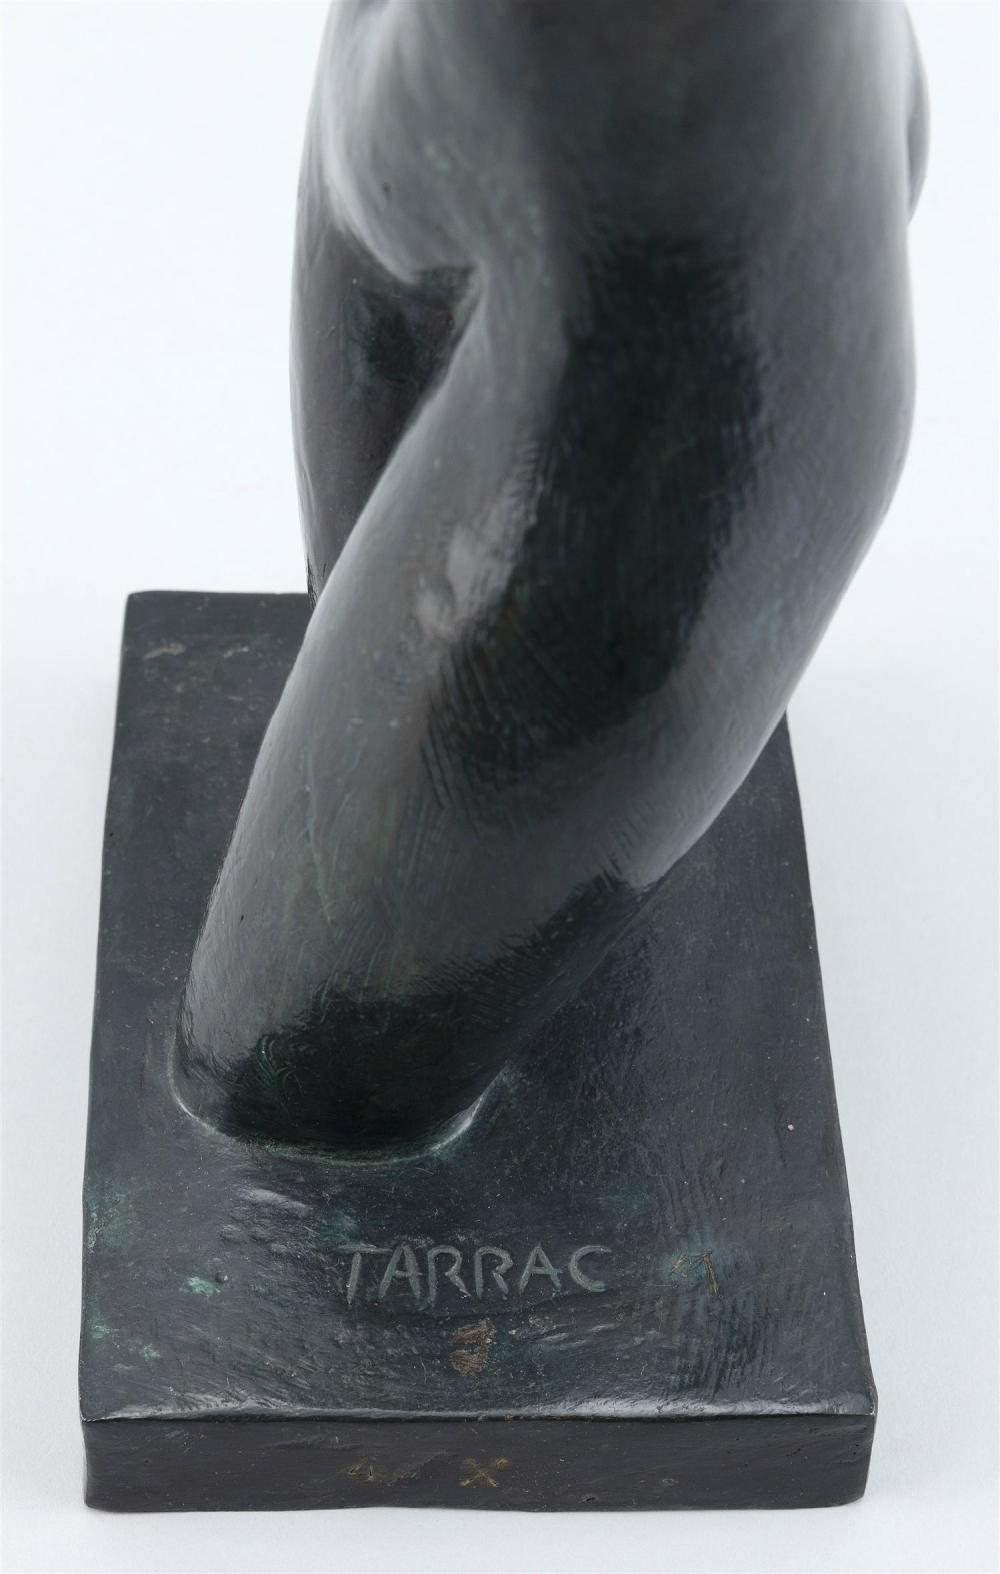 ANGEL TARRAC, Spain, 1898-1979, Female nude., Cast bronze with applied verdigris patina, height 16